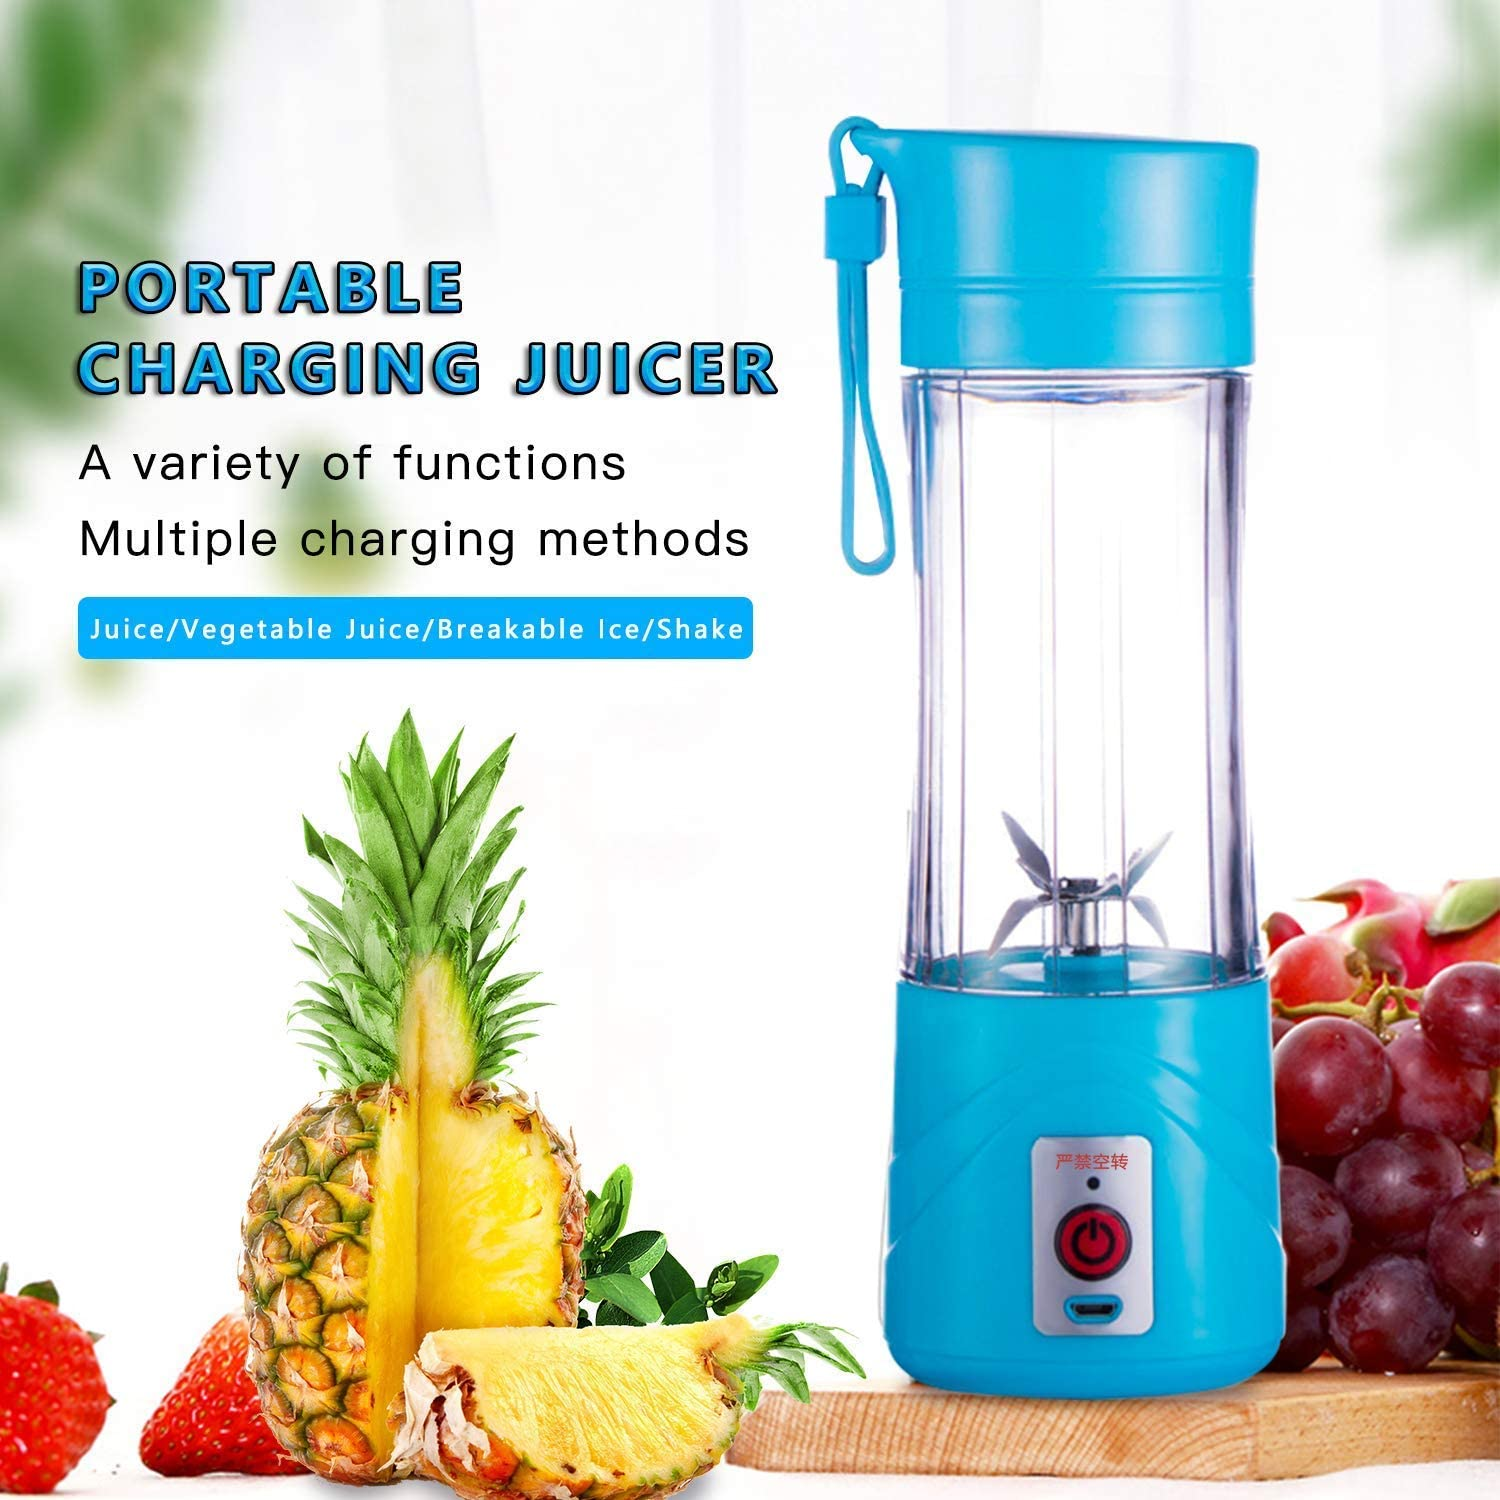 Mini USB Rechargeable Juicer, 380ml Mini Personal Blender Smoothie Maker | 6 Blades portable blender | Muti color USB Rechargeable Juicer Cup Bottle for Home, Office, Sports, Outdoors